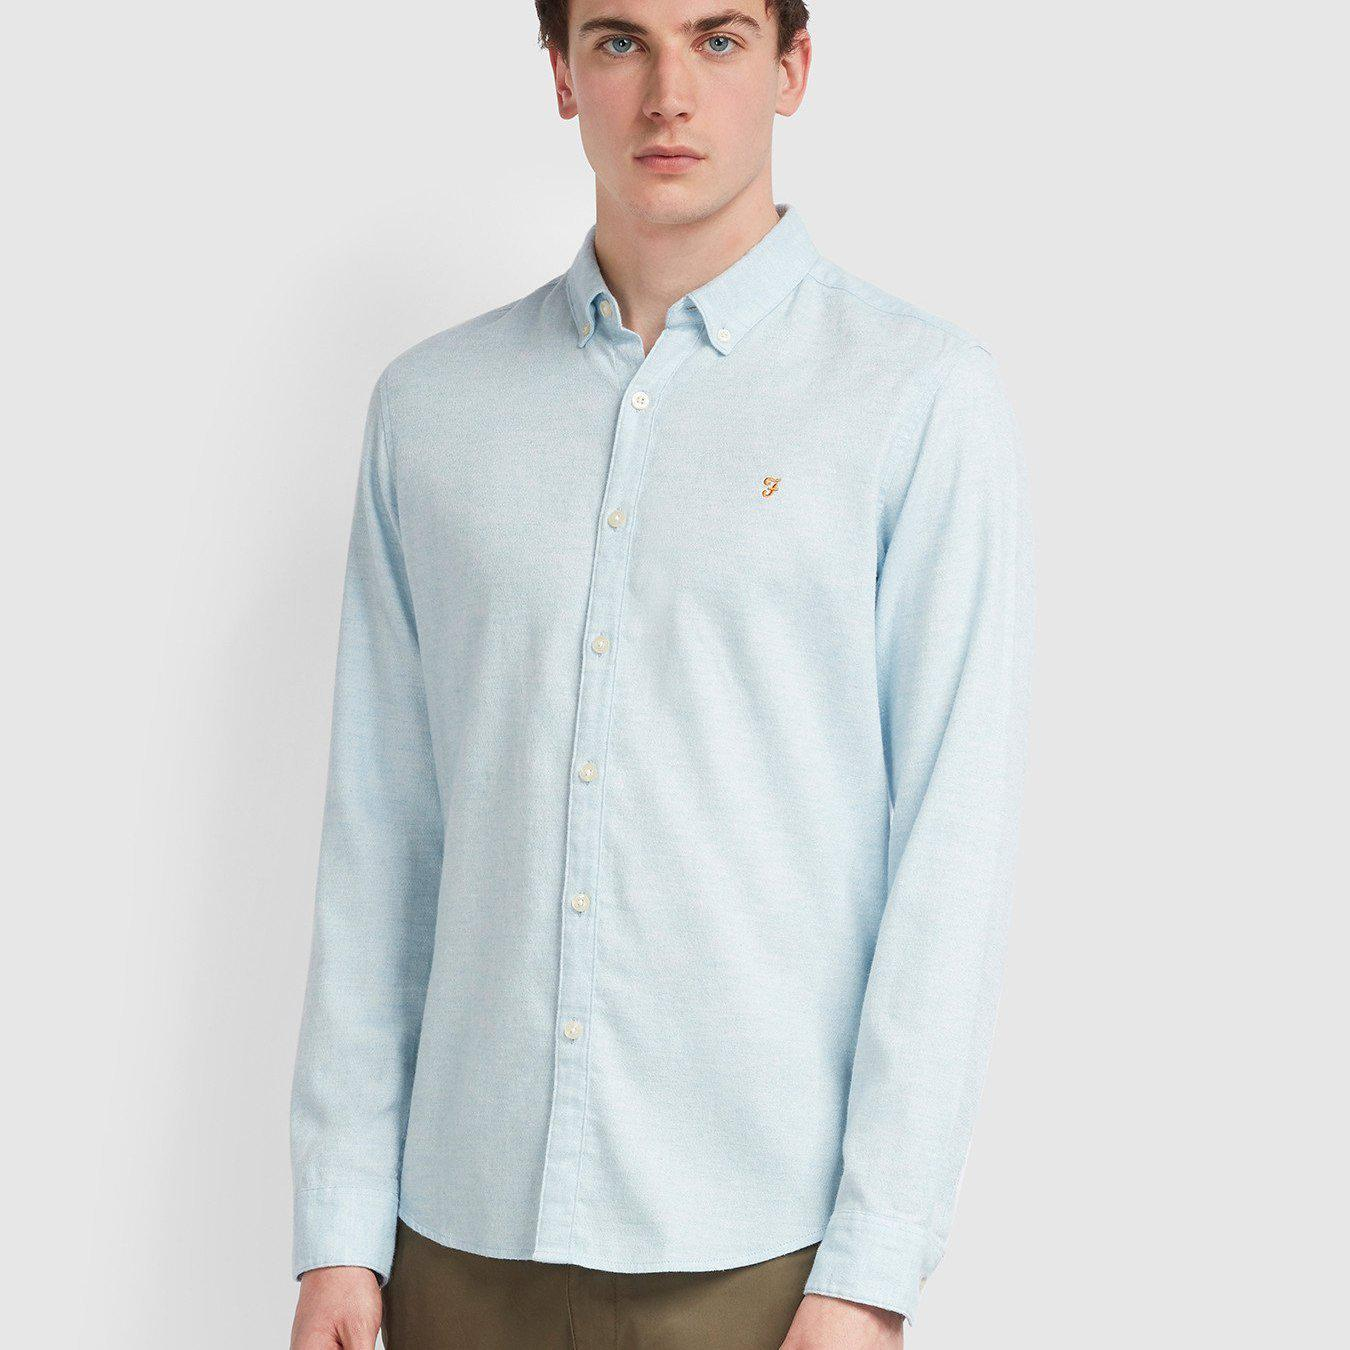 Farah Kreo Slim Fit Brushed Cotton Shirt - Moonstone